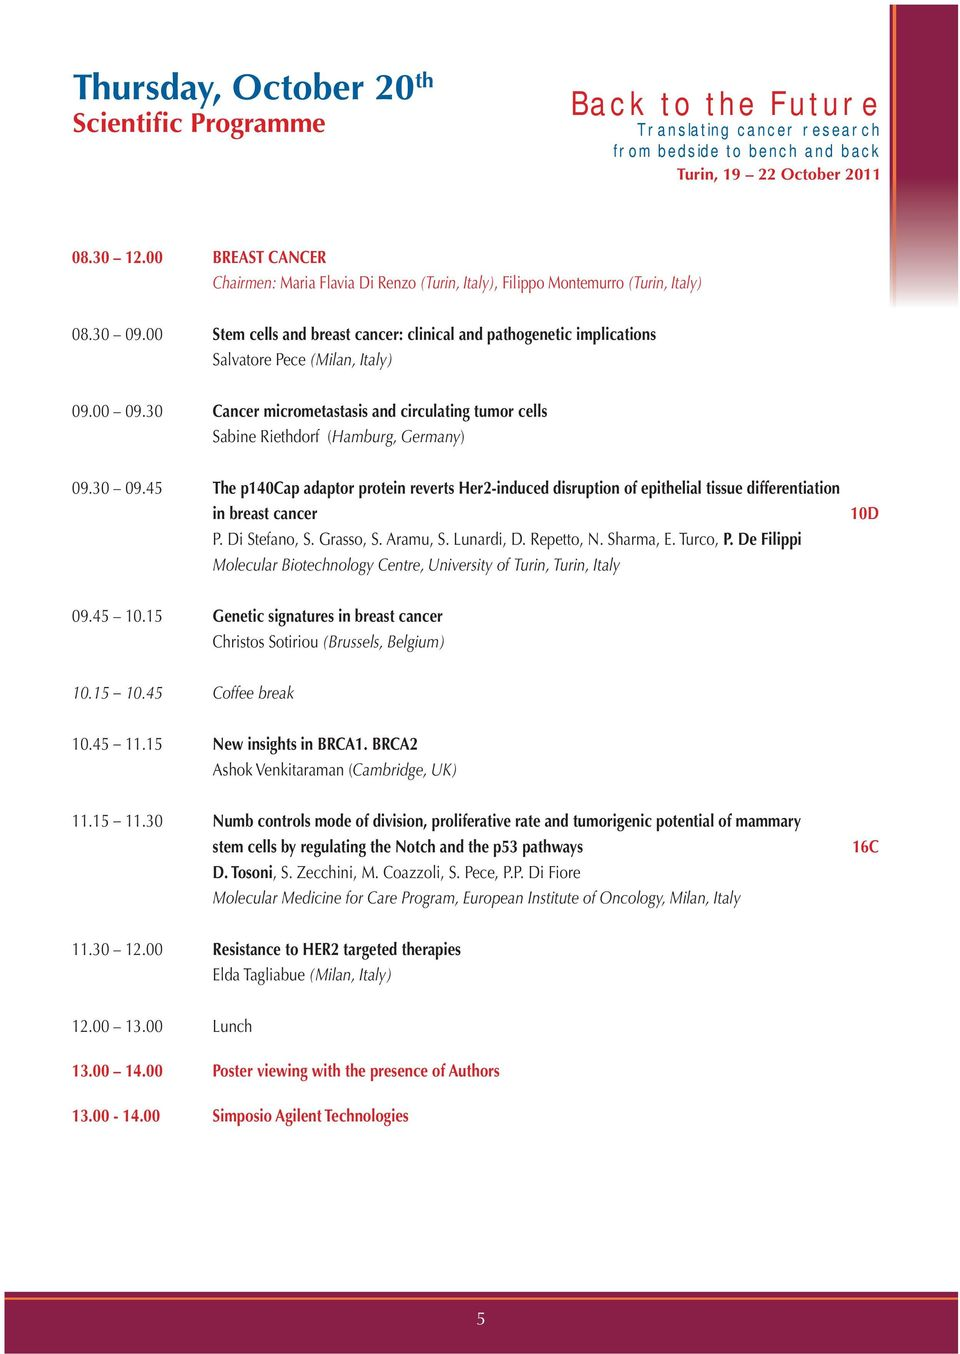 30 Cancer micrometastasis and circulating tumor cells Sabine Riethdorf (Hamburg, Germany) 09.30 09.